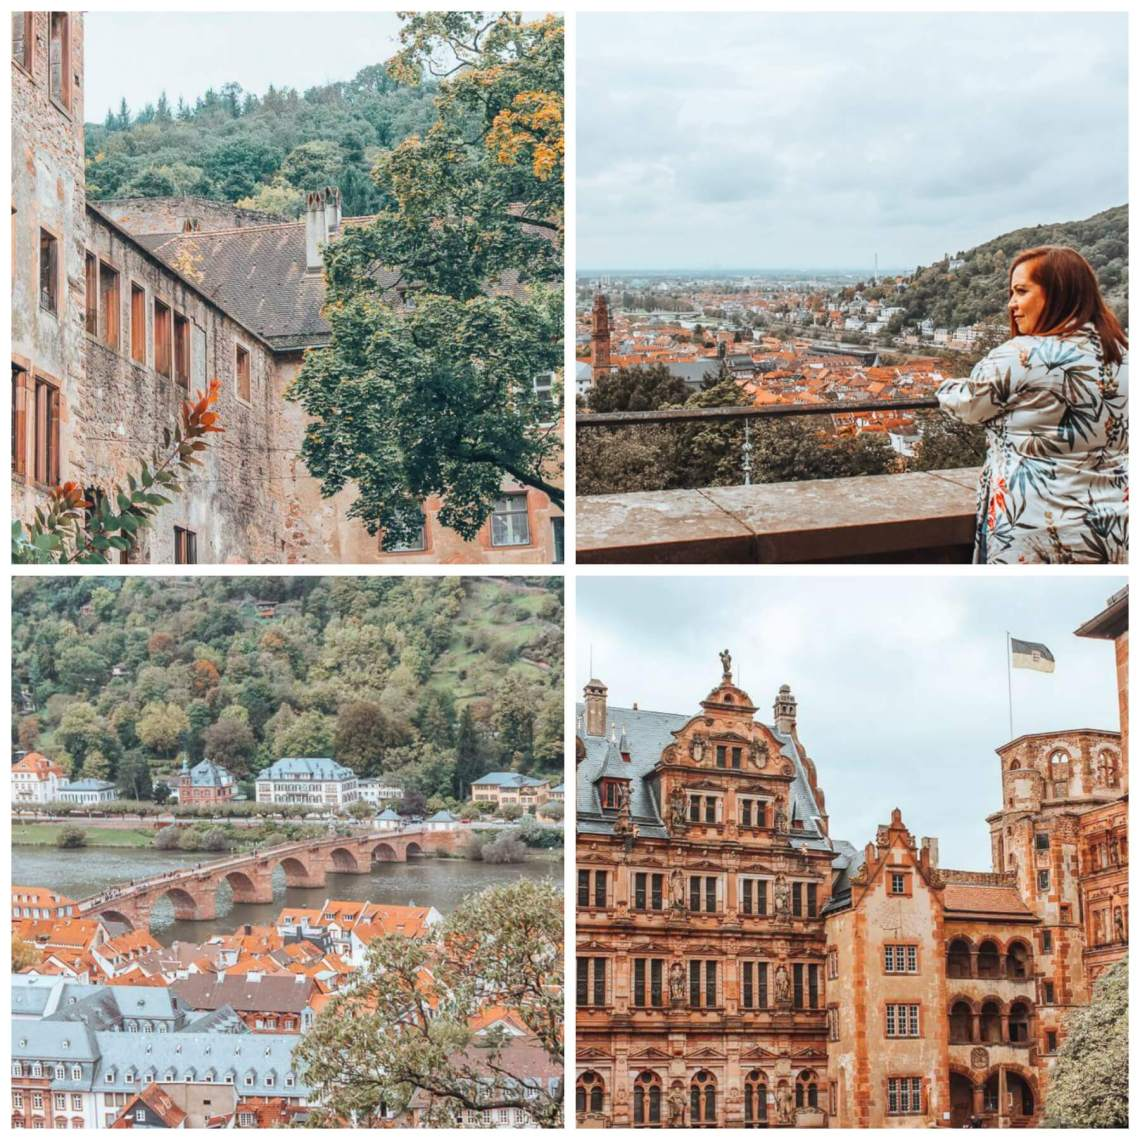 How to spend one day in Heidelberg Germany